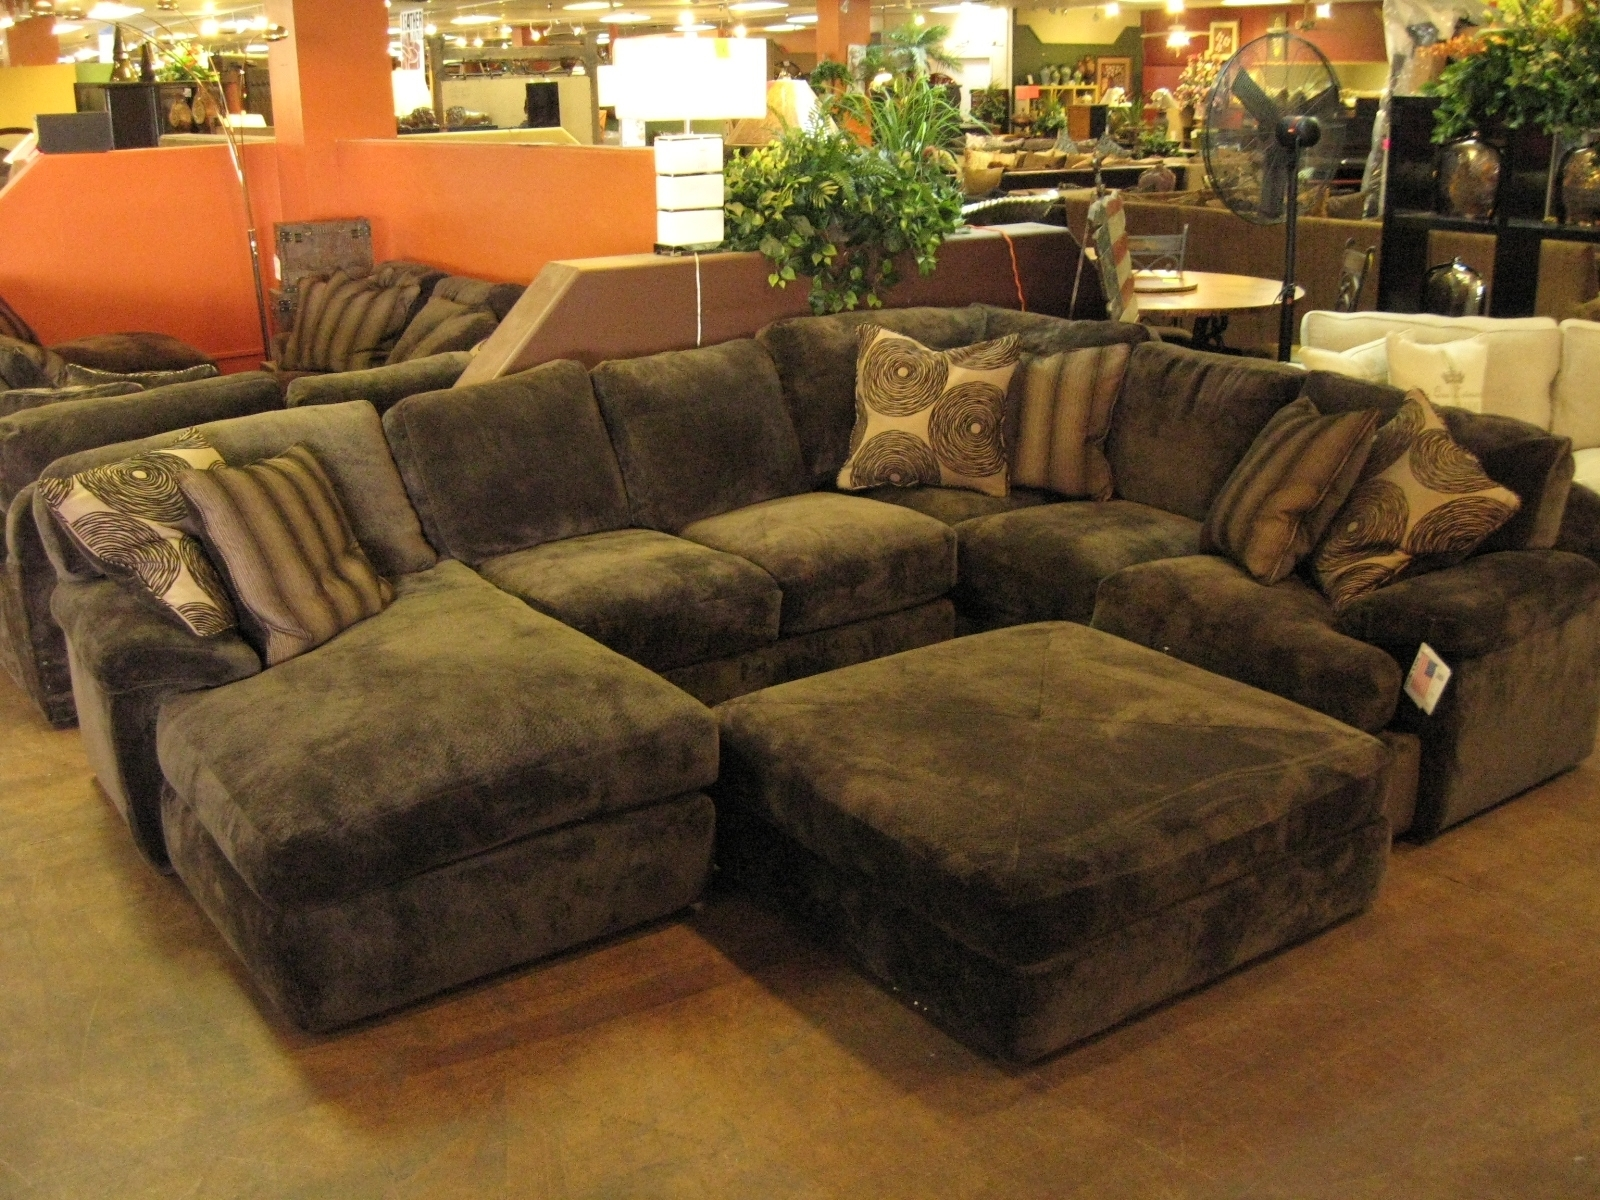 chaise sofa with ottoman costco tufted brown leather 10 top sectional sofas and ideas